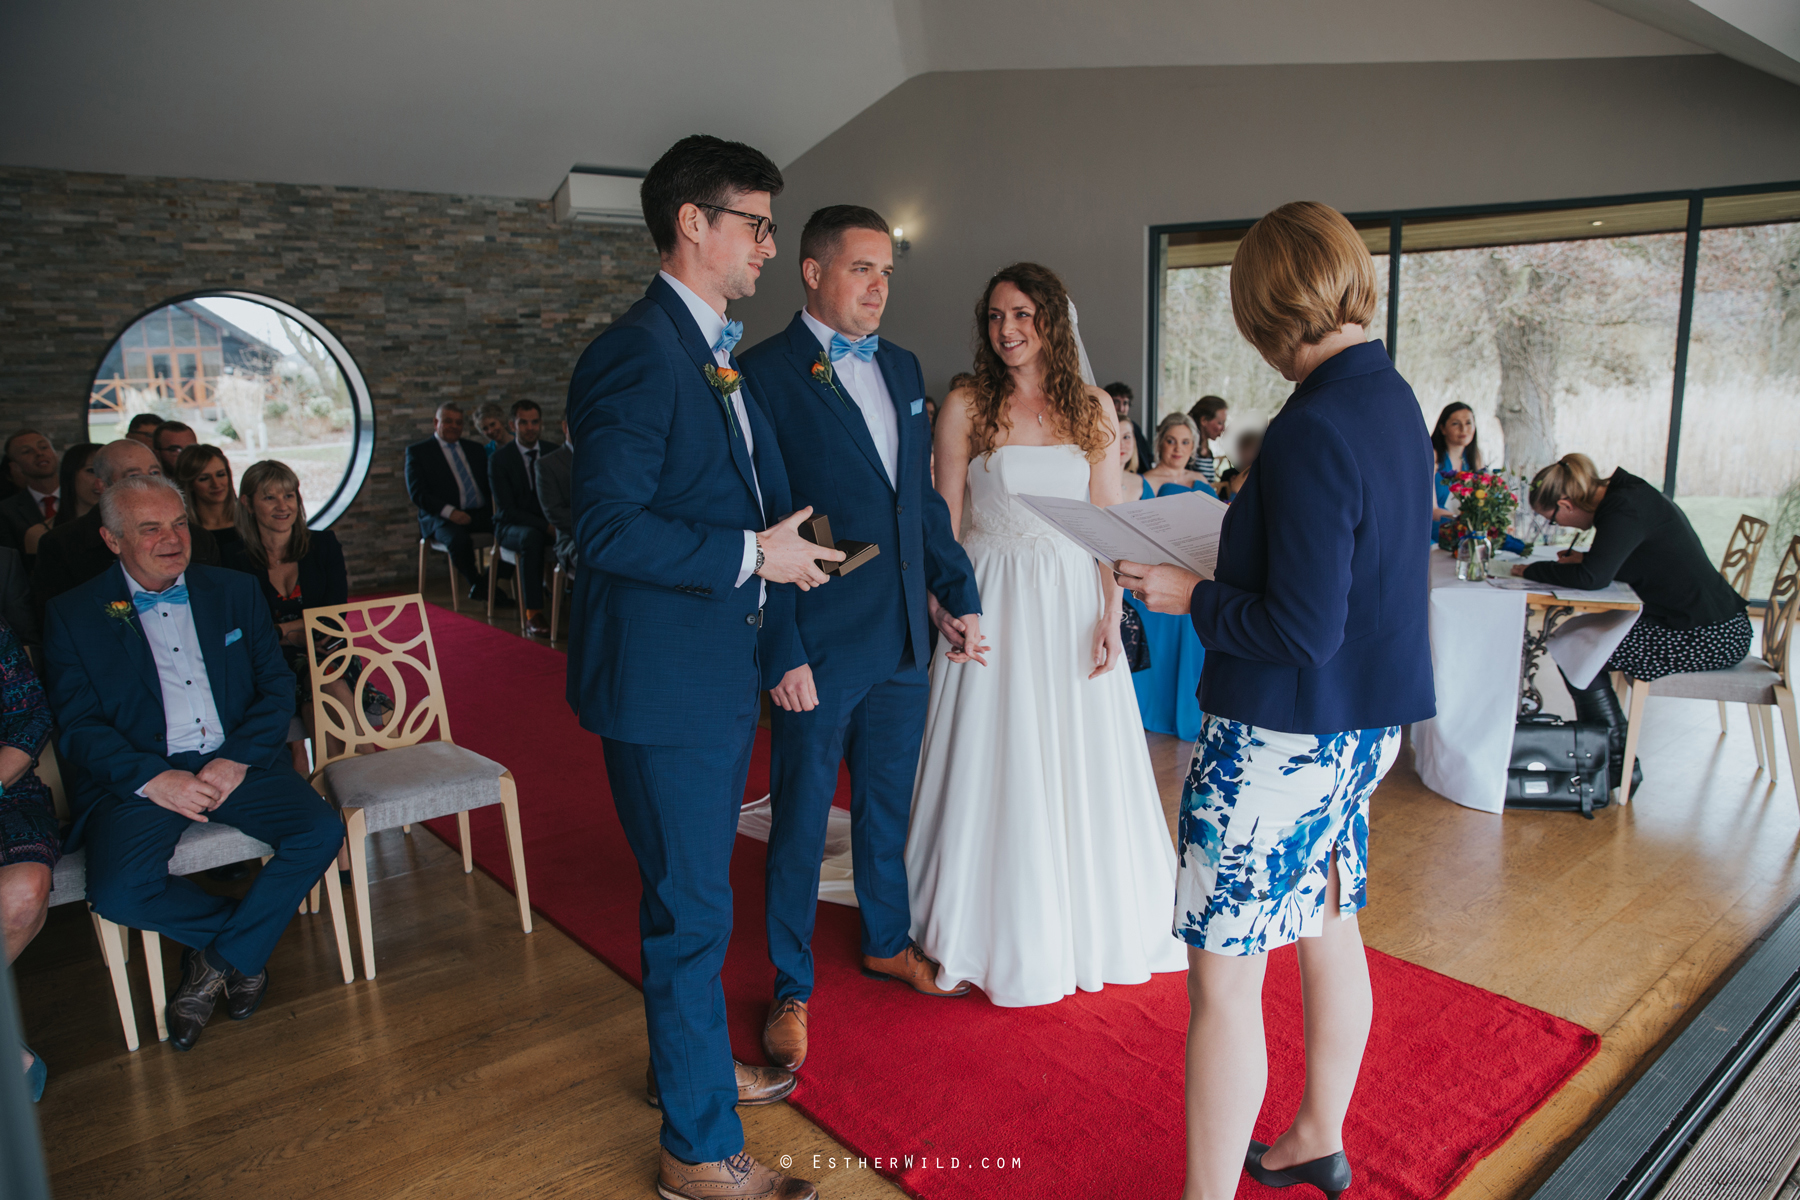 The_BoatHouse_Wedding_Venue_Ormesby_Norfolk_Broads_Boat_Wedding_Photography_Esther_Wild_Photographer_IMG_1118.jpg